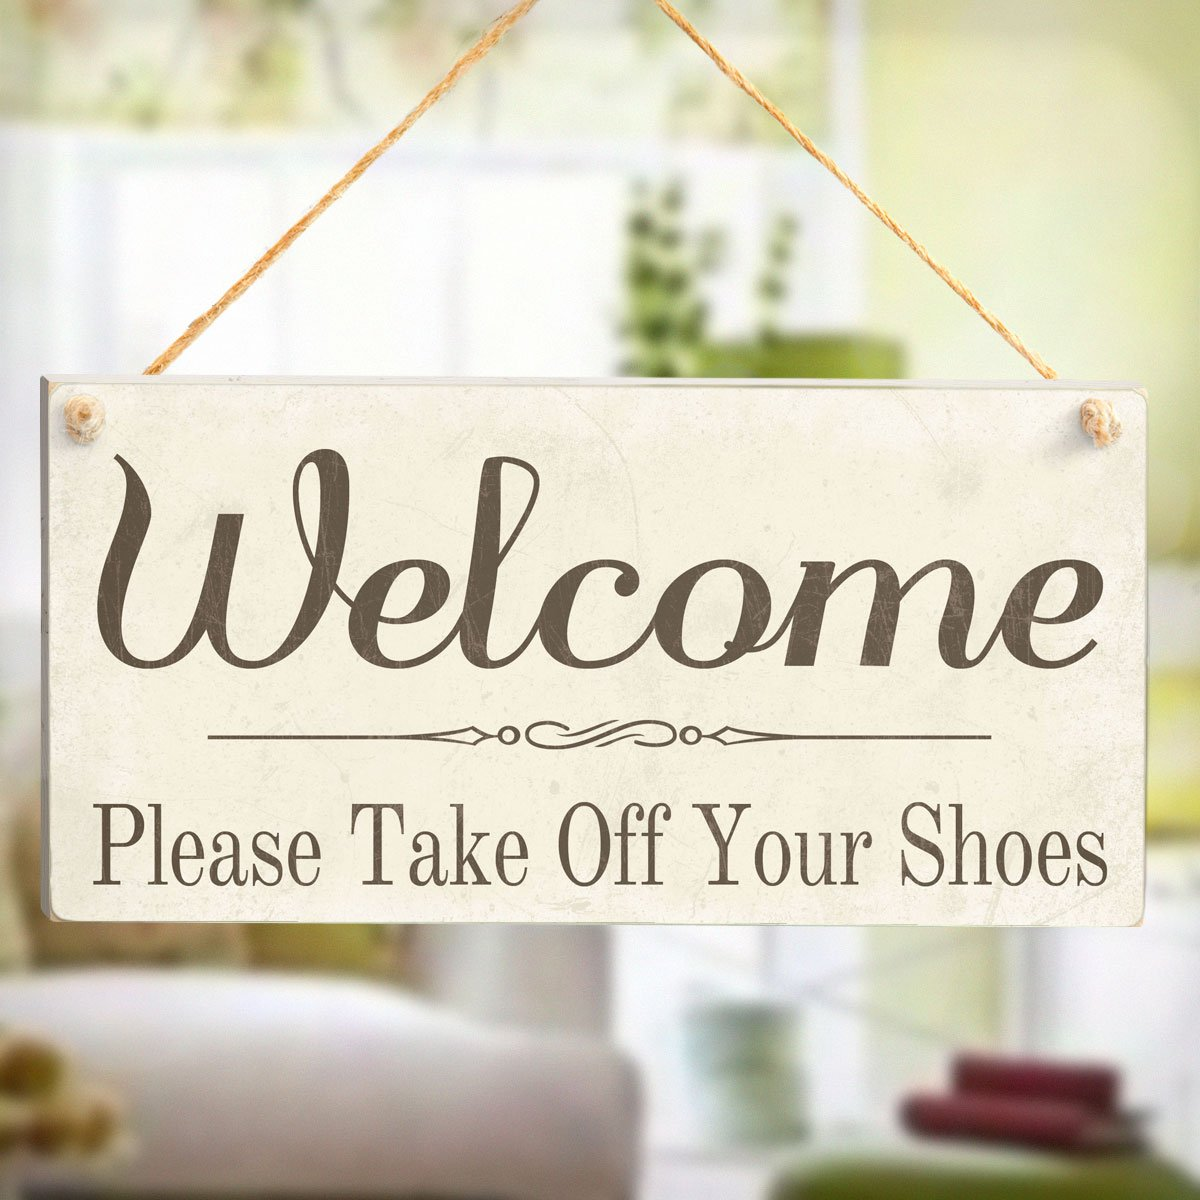 Welcome Please Take Off Your Shoes - Wooden Sign Gift: Amazon.co ...